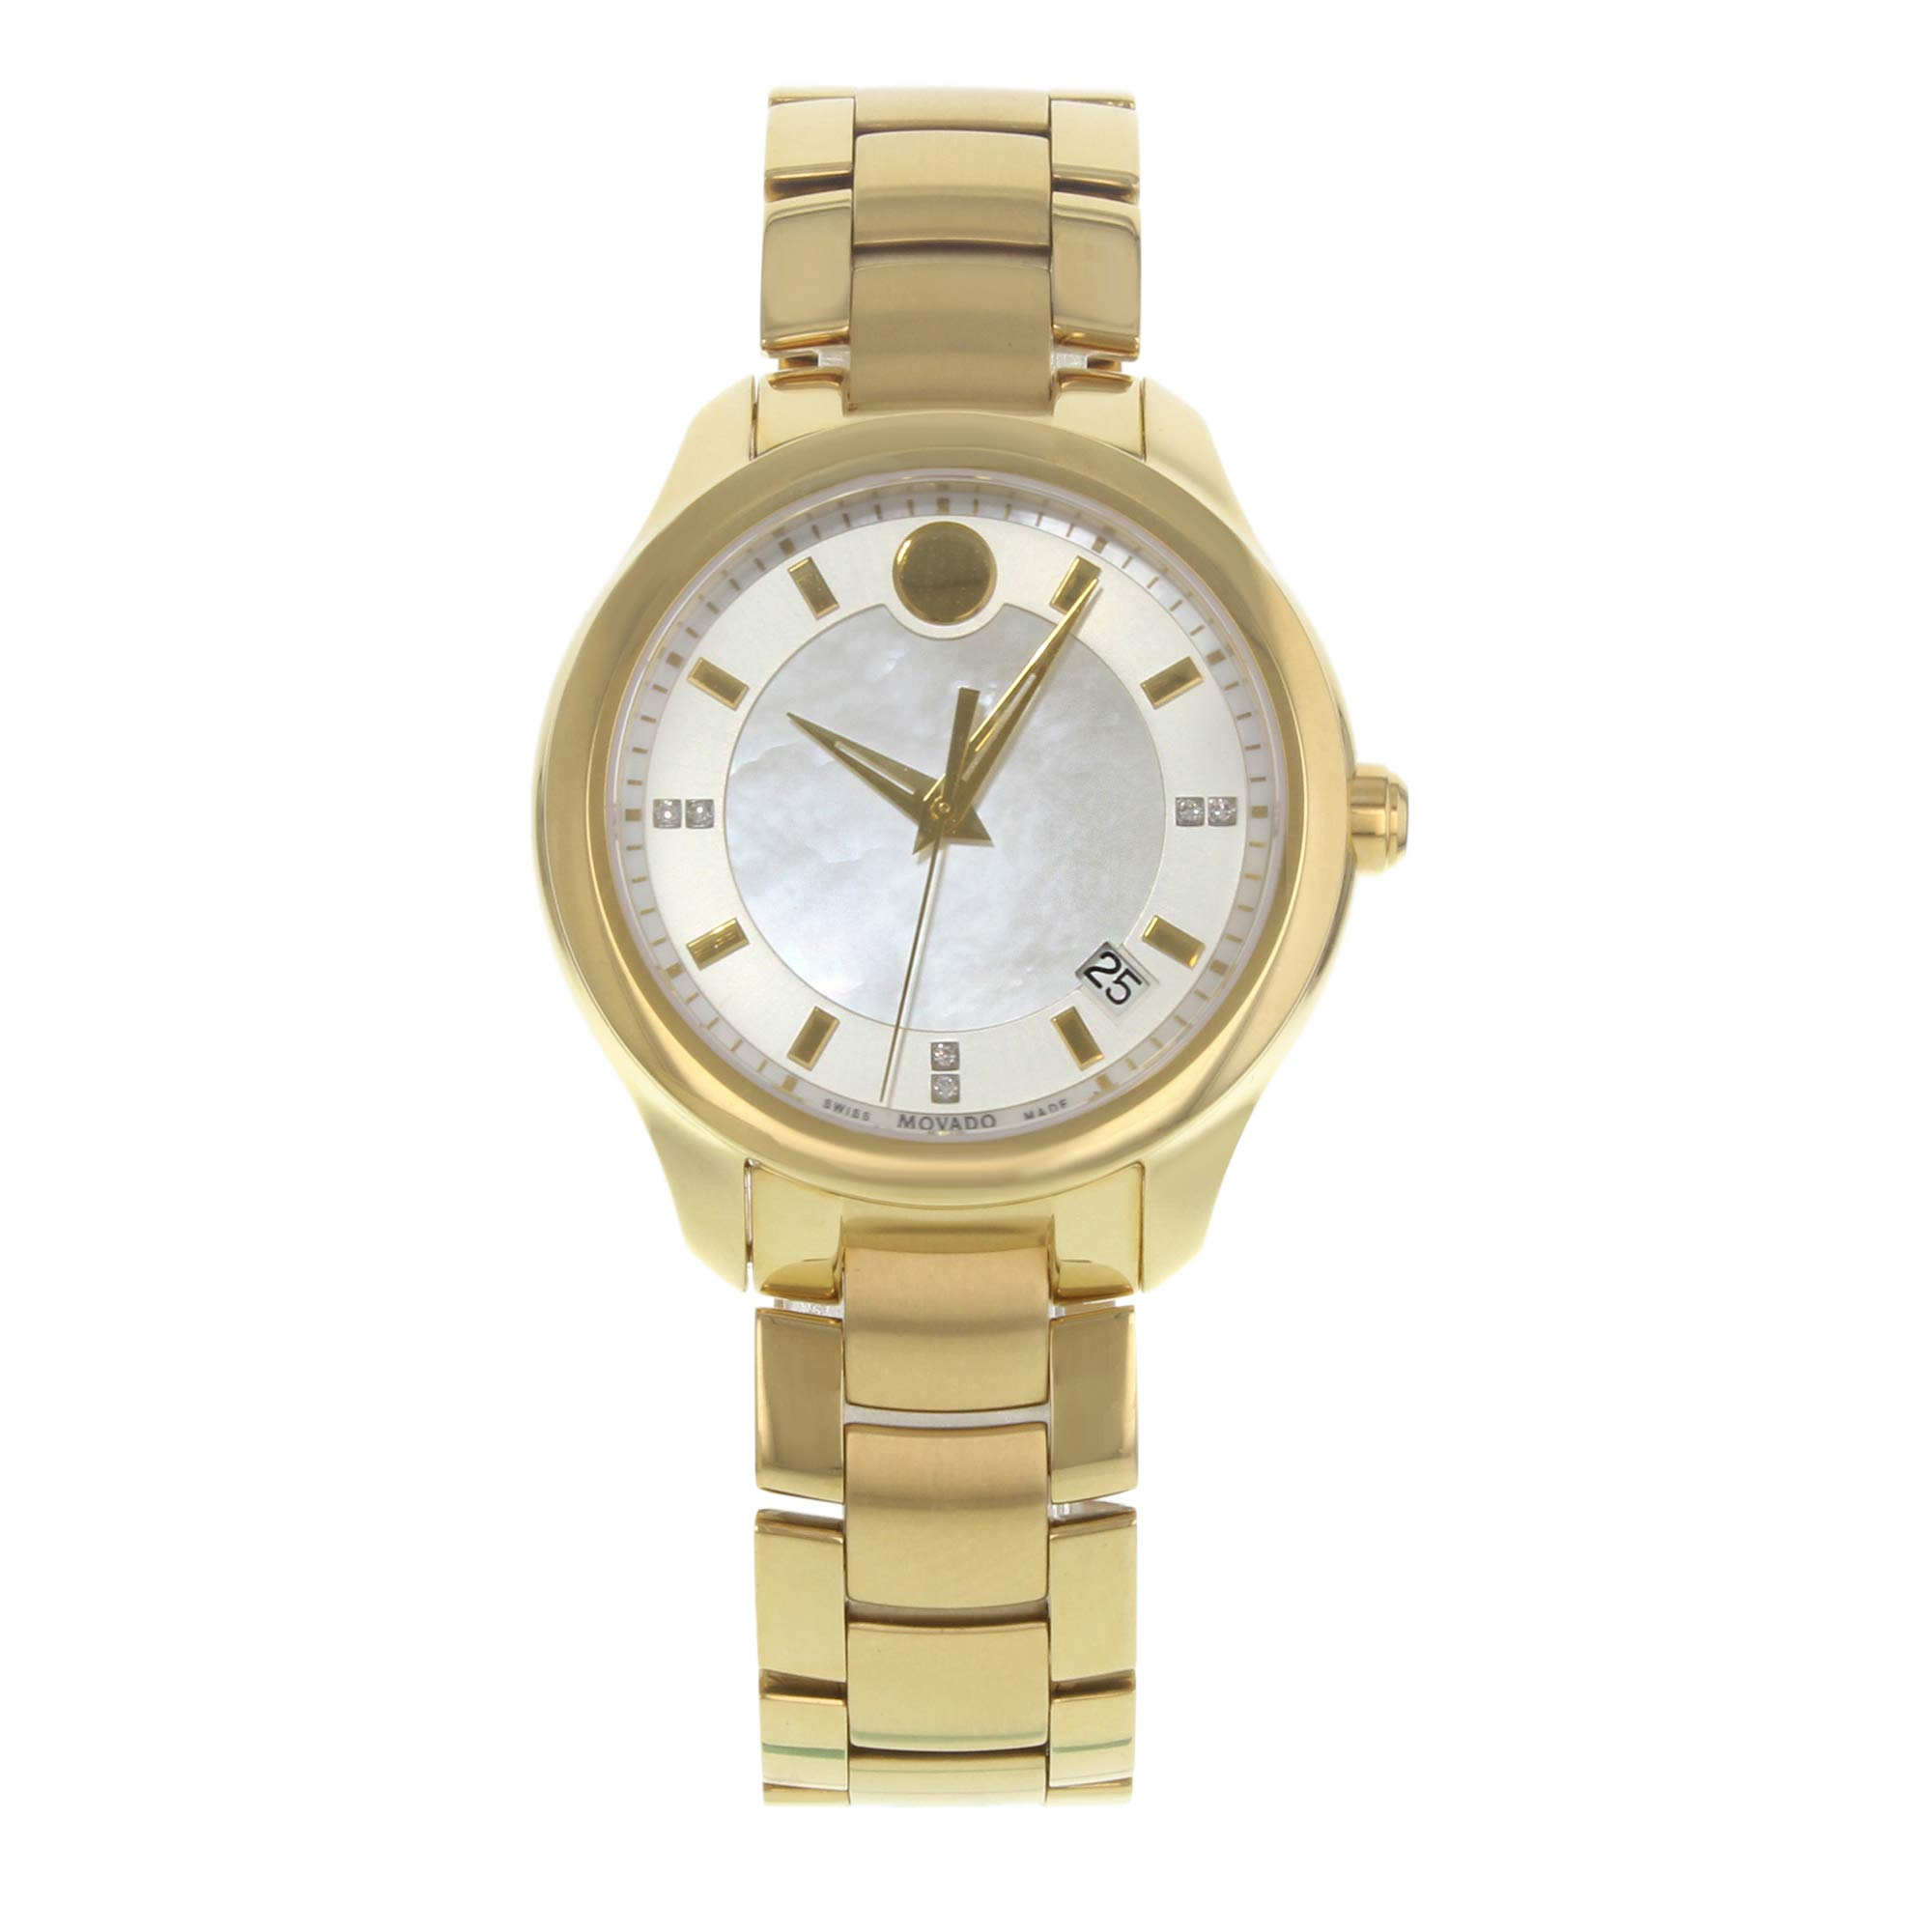 Movado Bellina Quartz Female Watch 0606980 (Certified Pre-Owned) by Movado